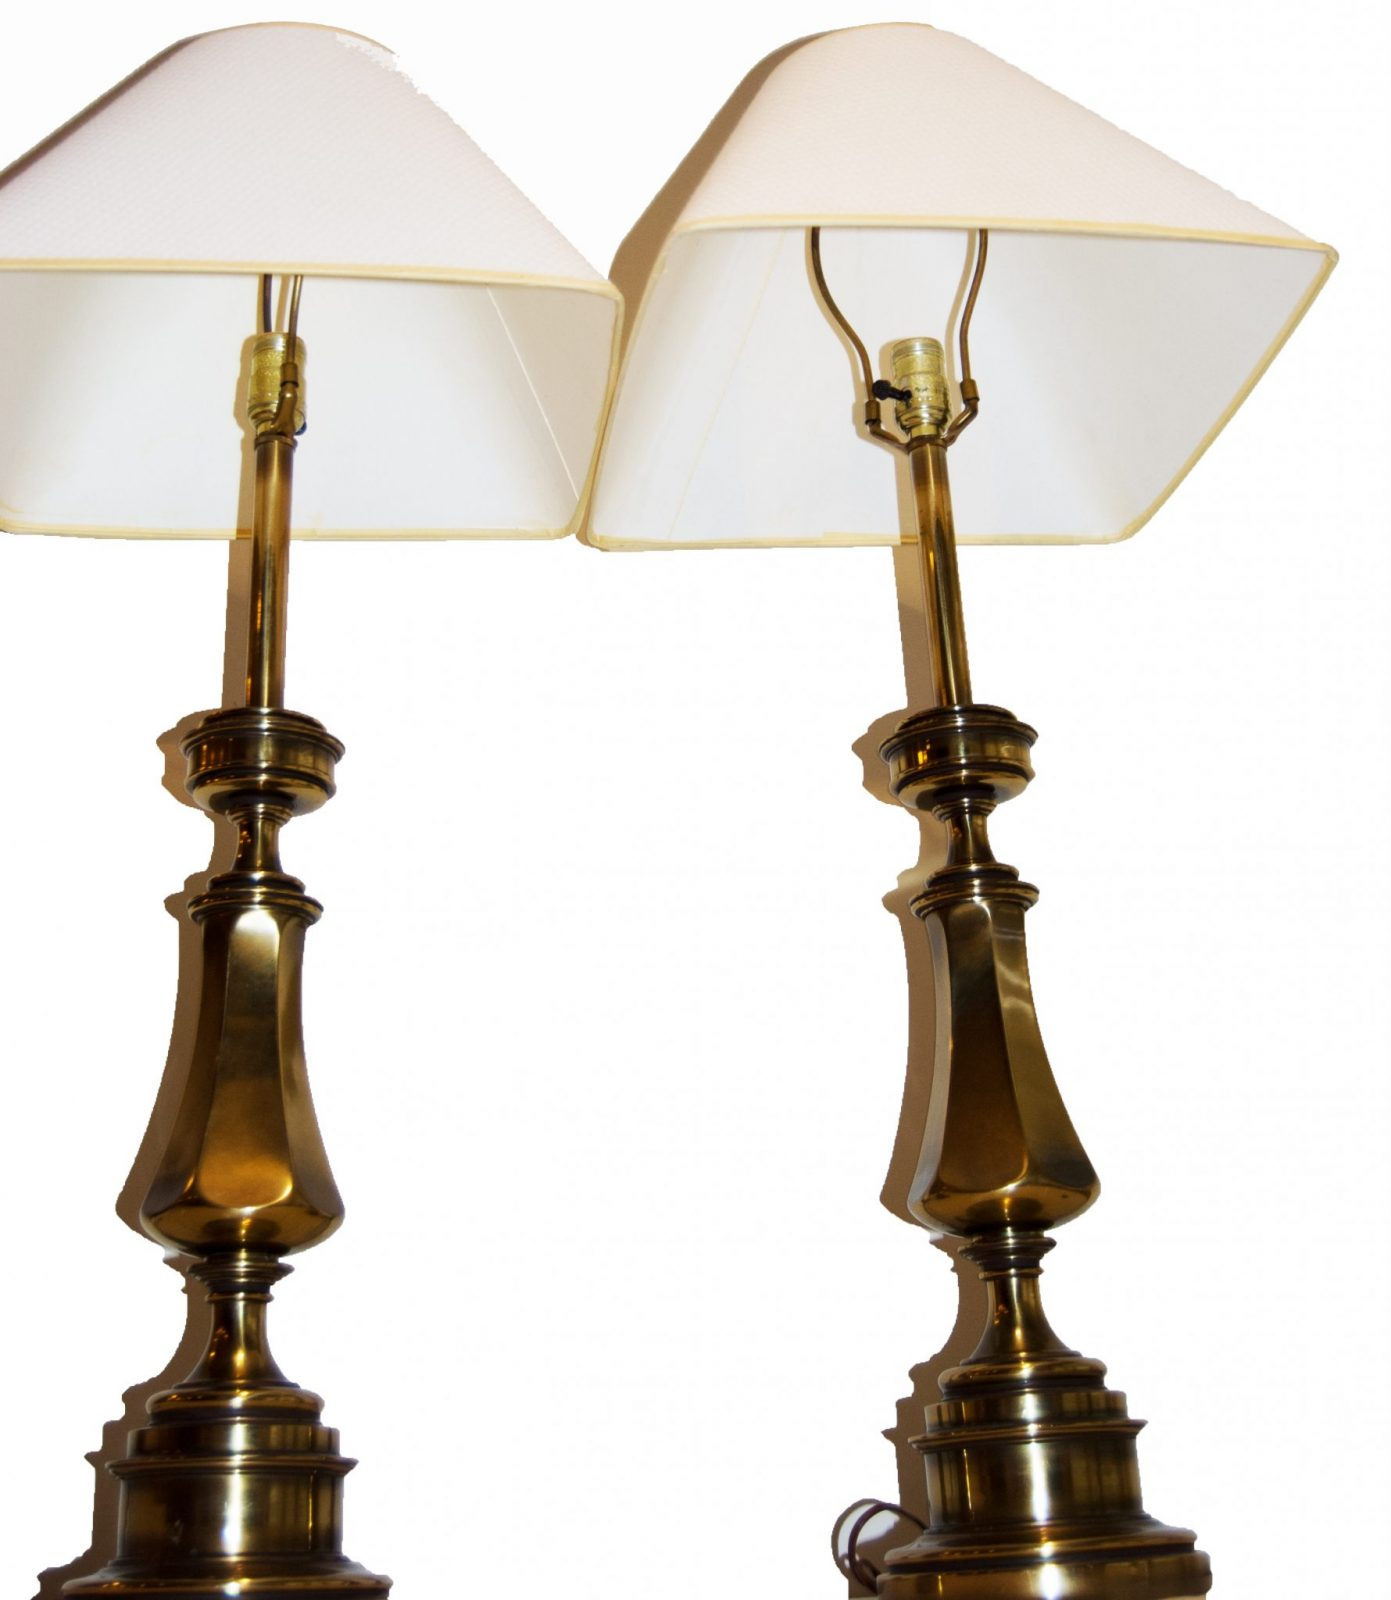 Chandelier Table Lamps: Vintage Matching Brass Stiffel Table Lamps